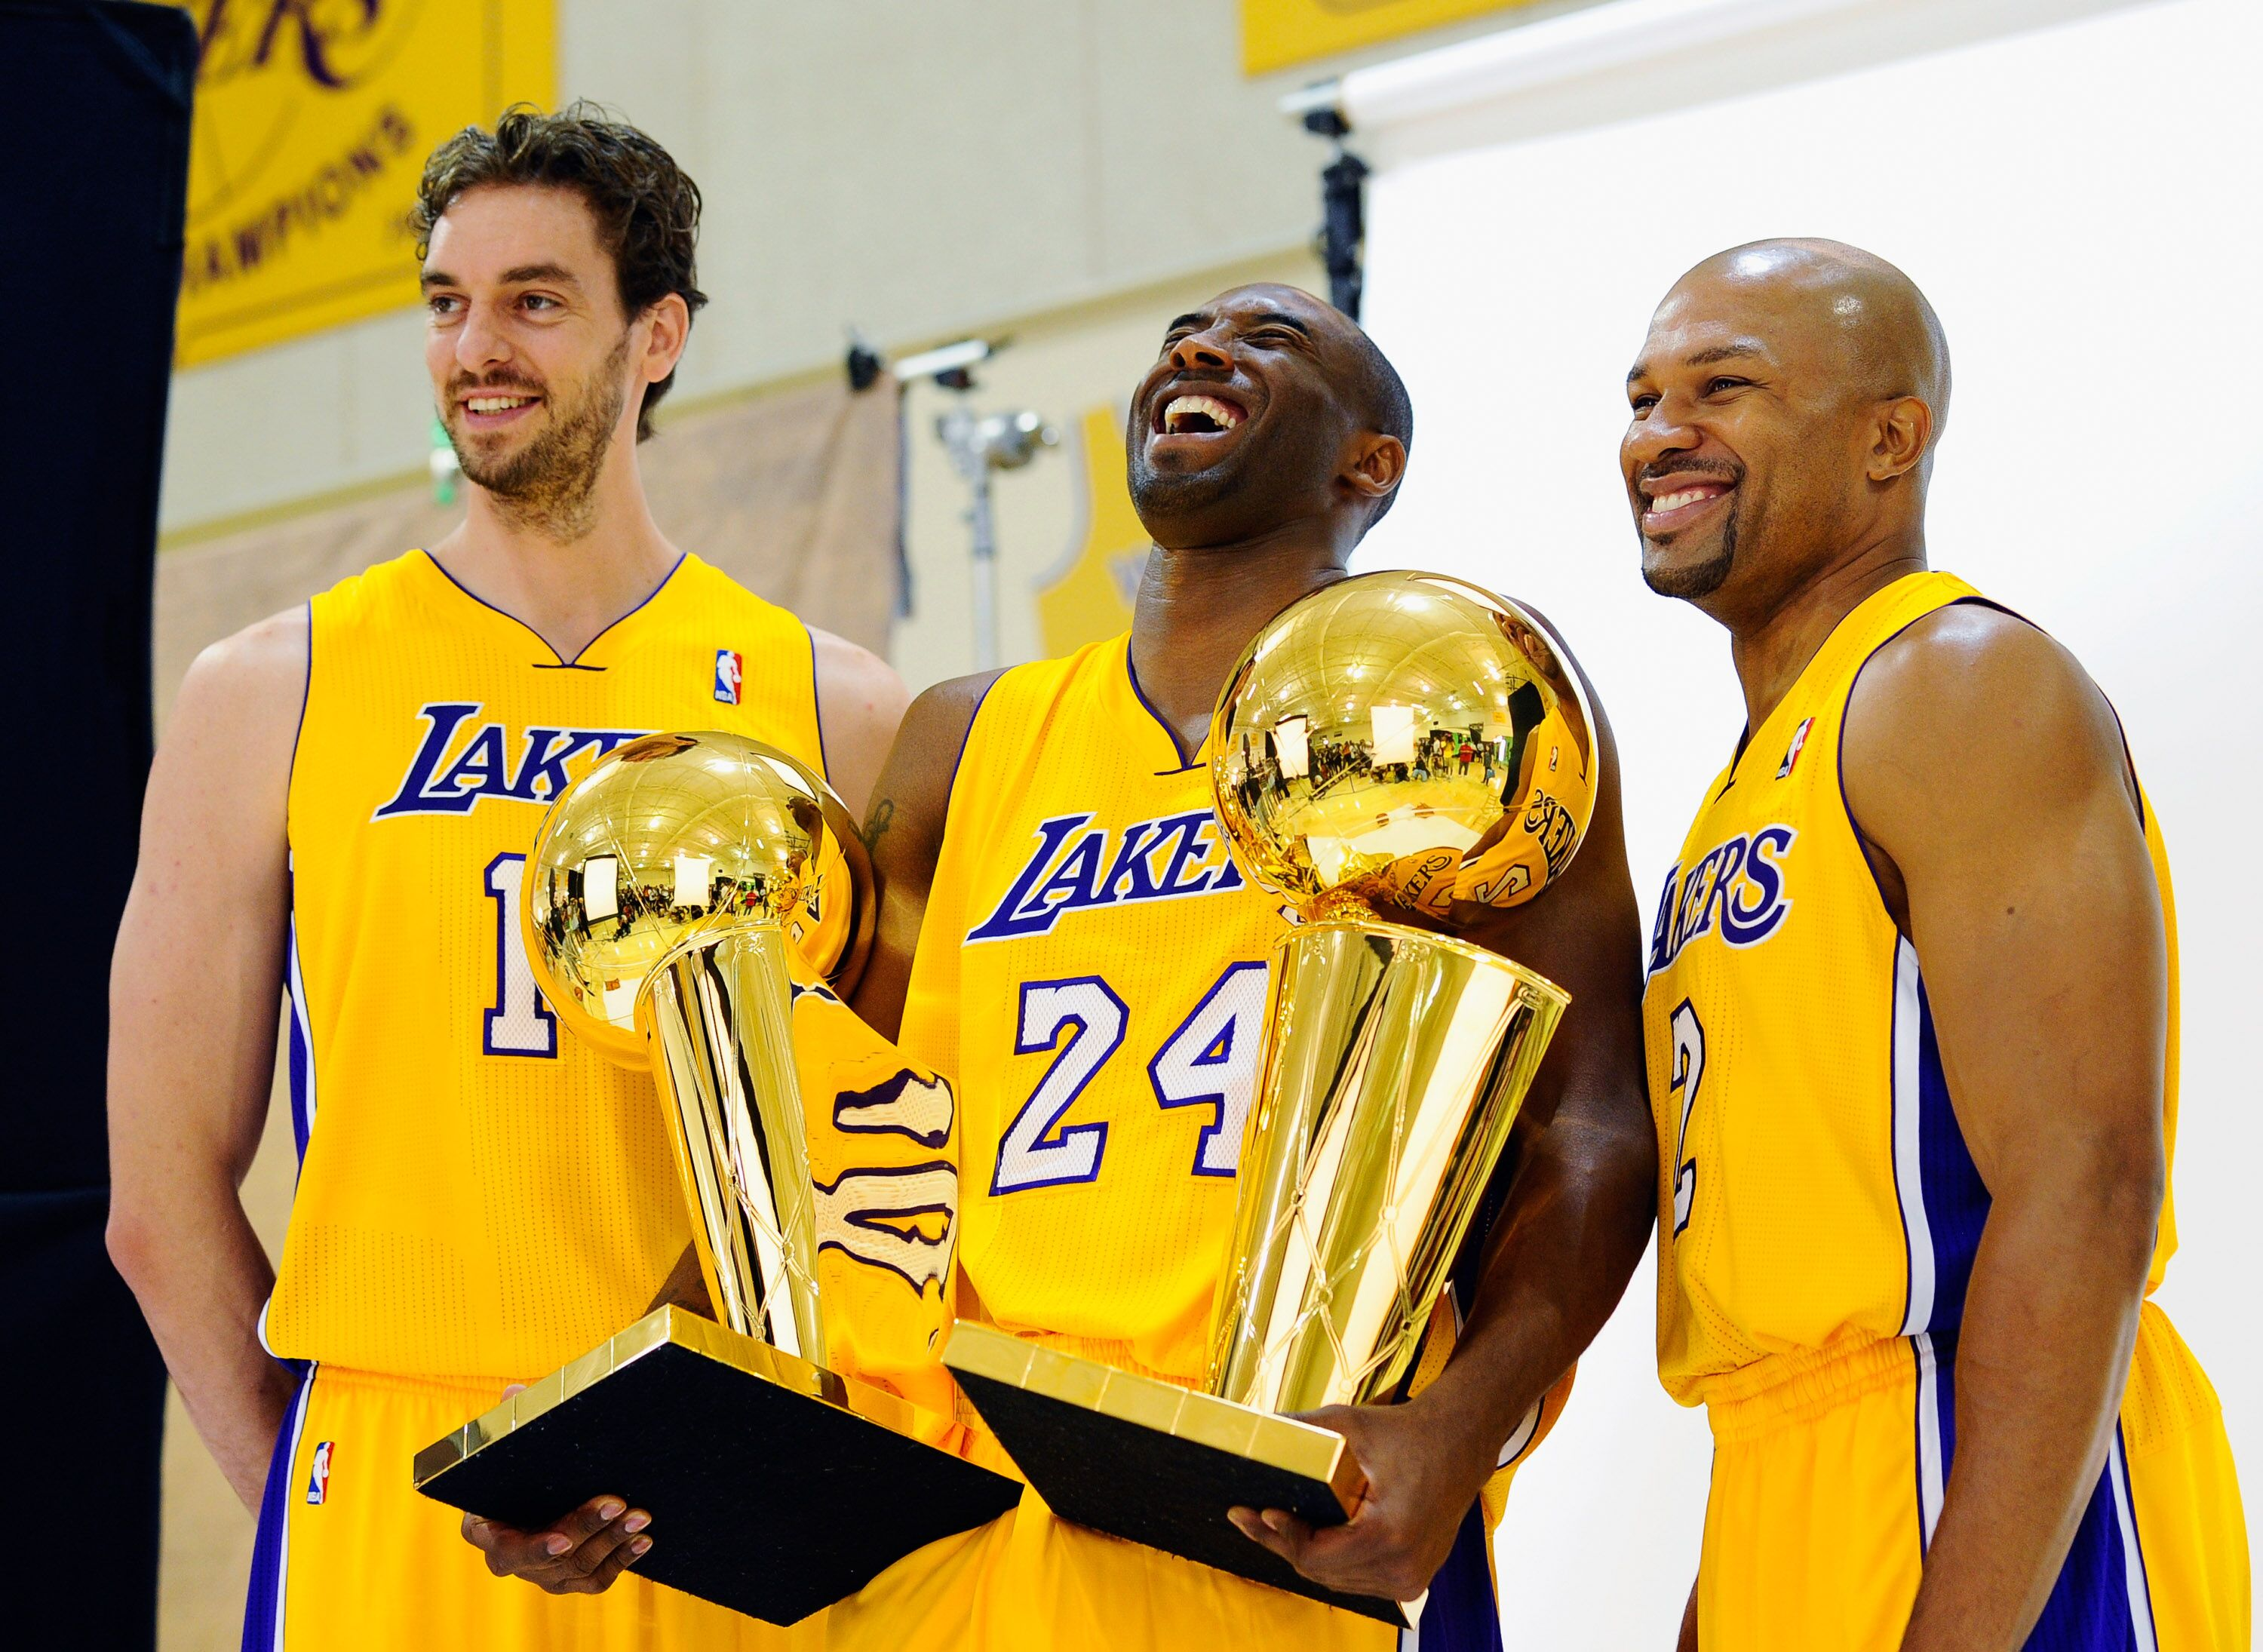 Kobe Bryant #24 of the Los Angeles Lakers laughs as he holds two NBA Finals Larry O'Brien Championship Trophy's as he poses for a photograph. | Source: Getty Images